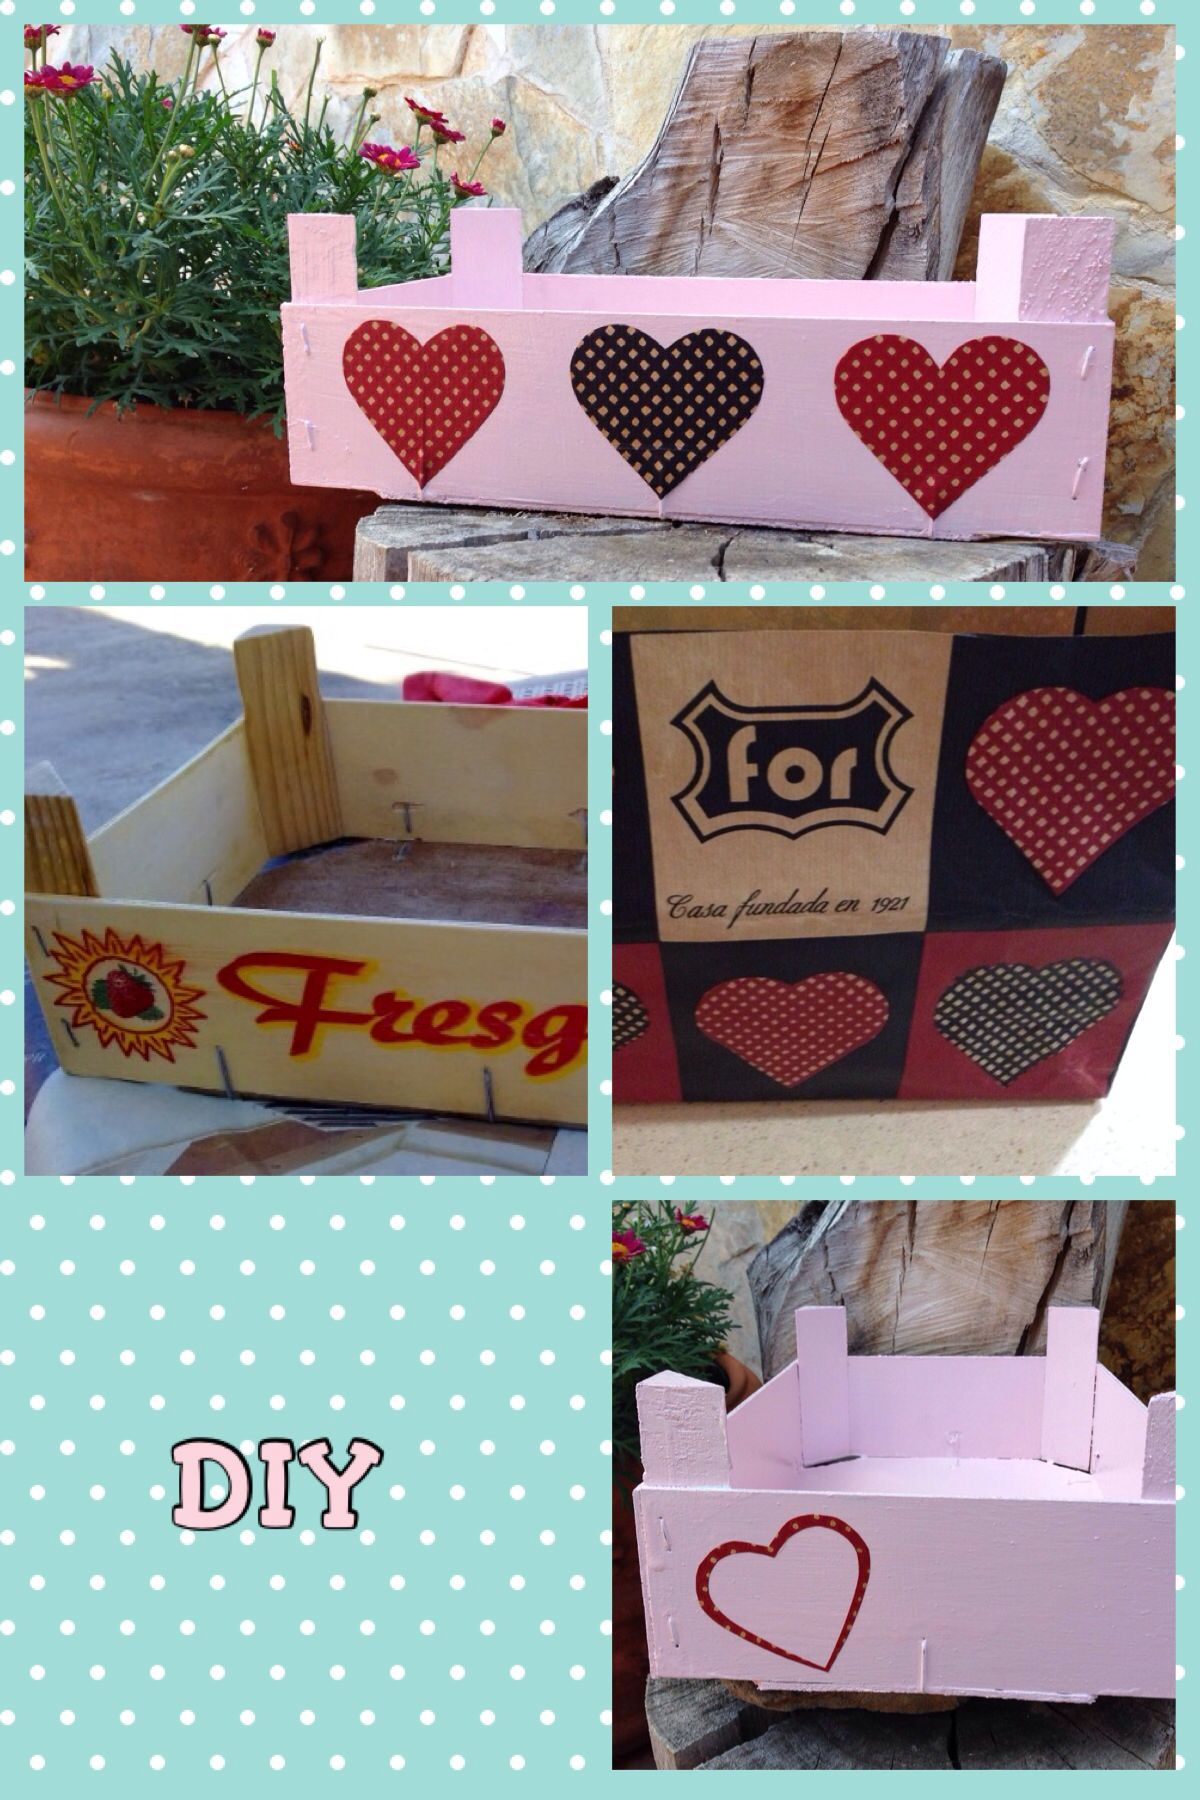 Cajas De Madera Decoradas Manualidades Caja Fresas De Madera Decorada Diy For You Pinterest